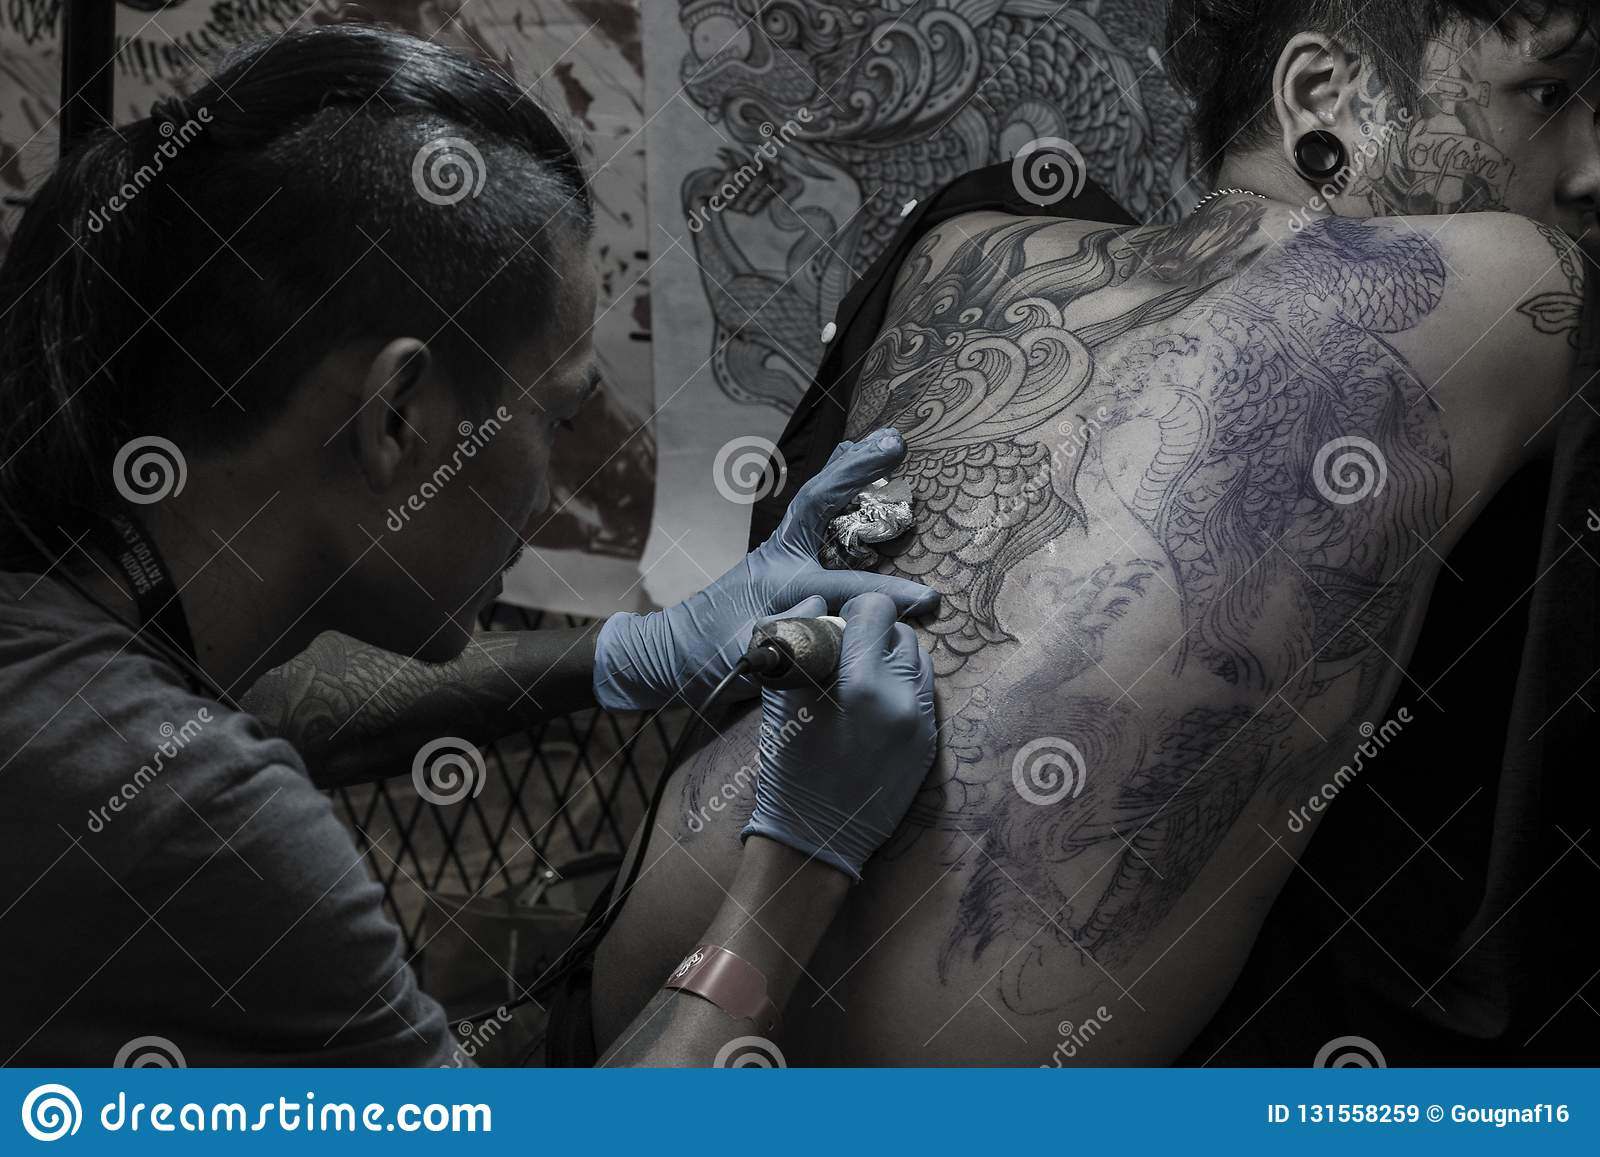 Young Man With A Face Tattoo Is Getting A Full Back Tattoo By Black